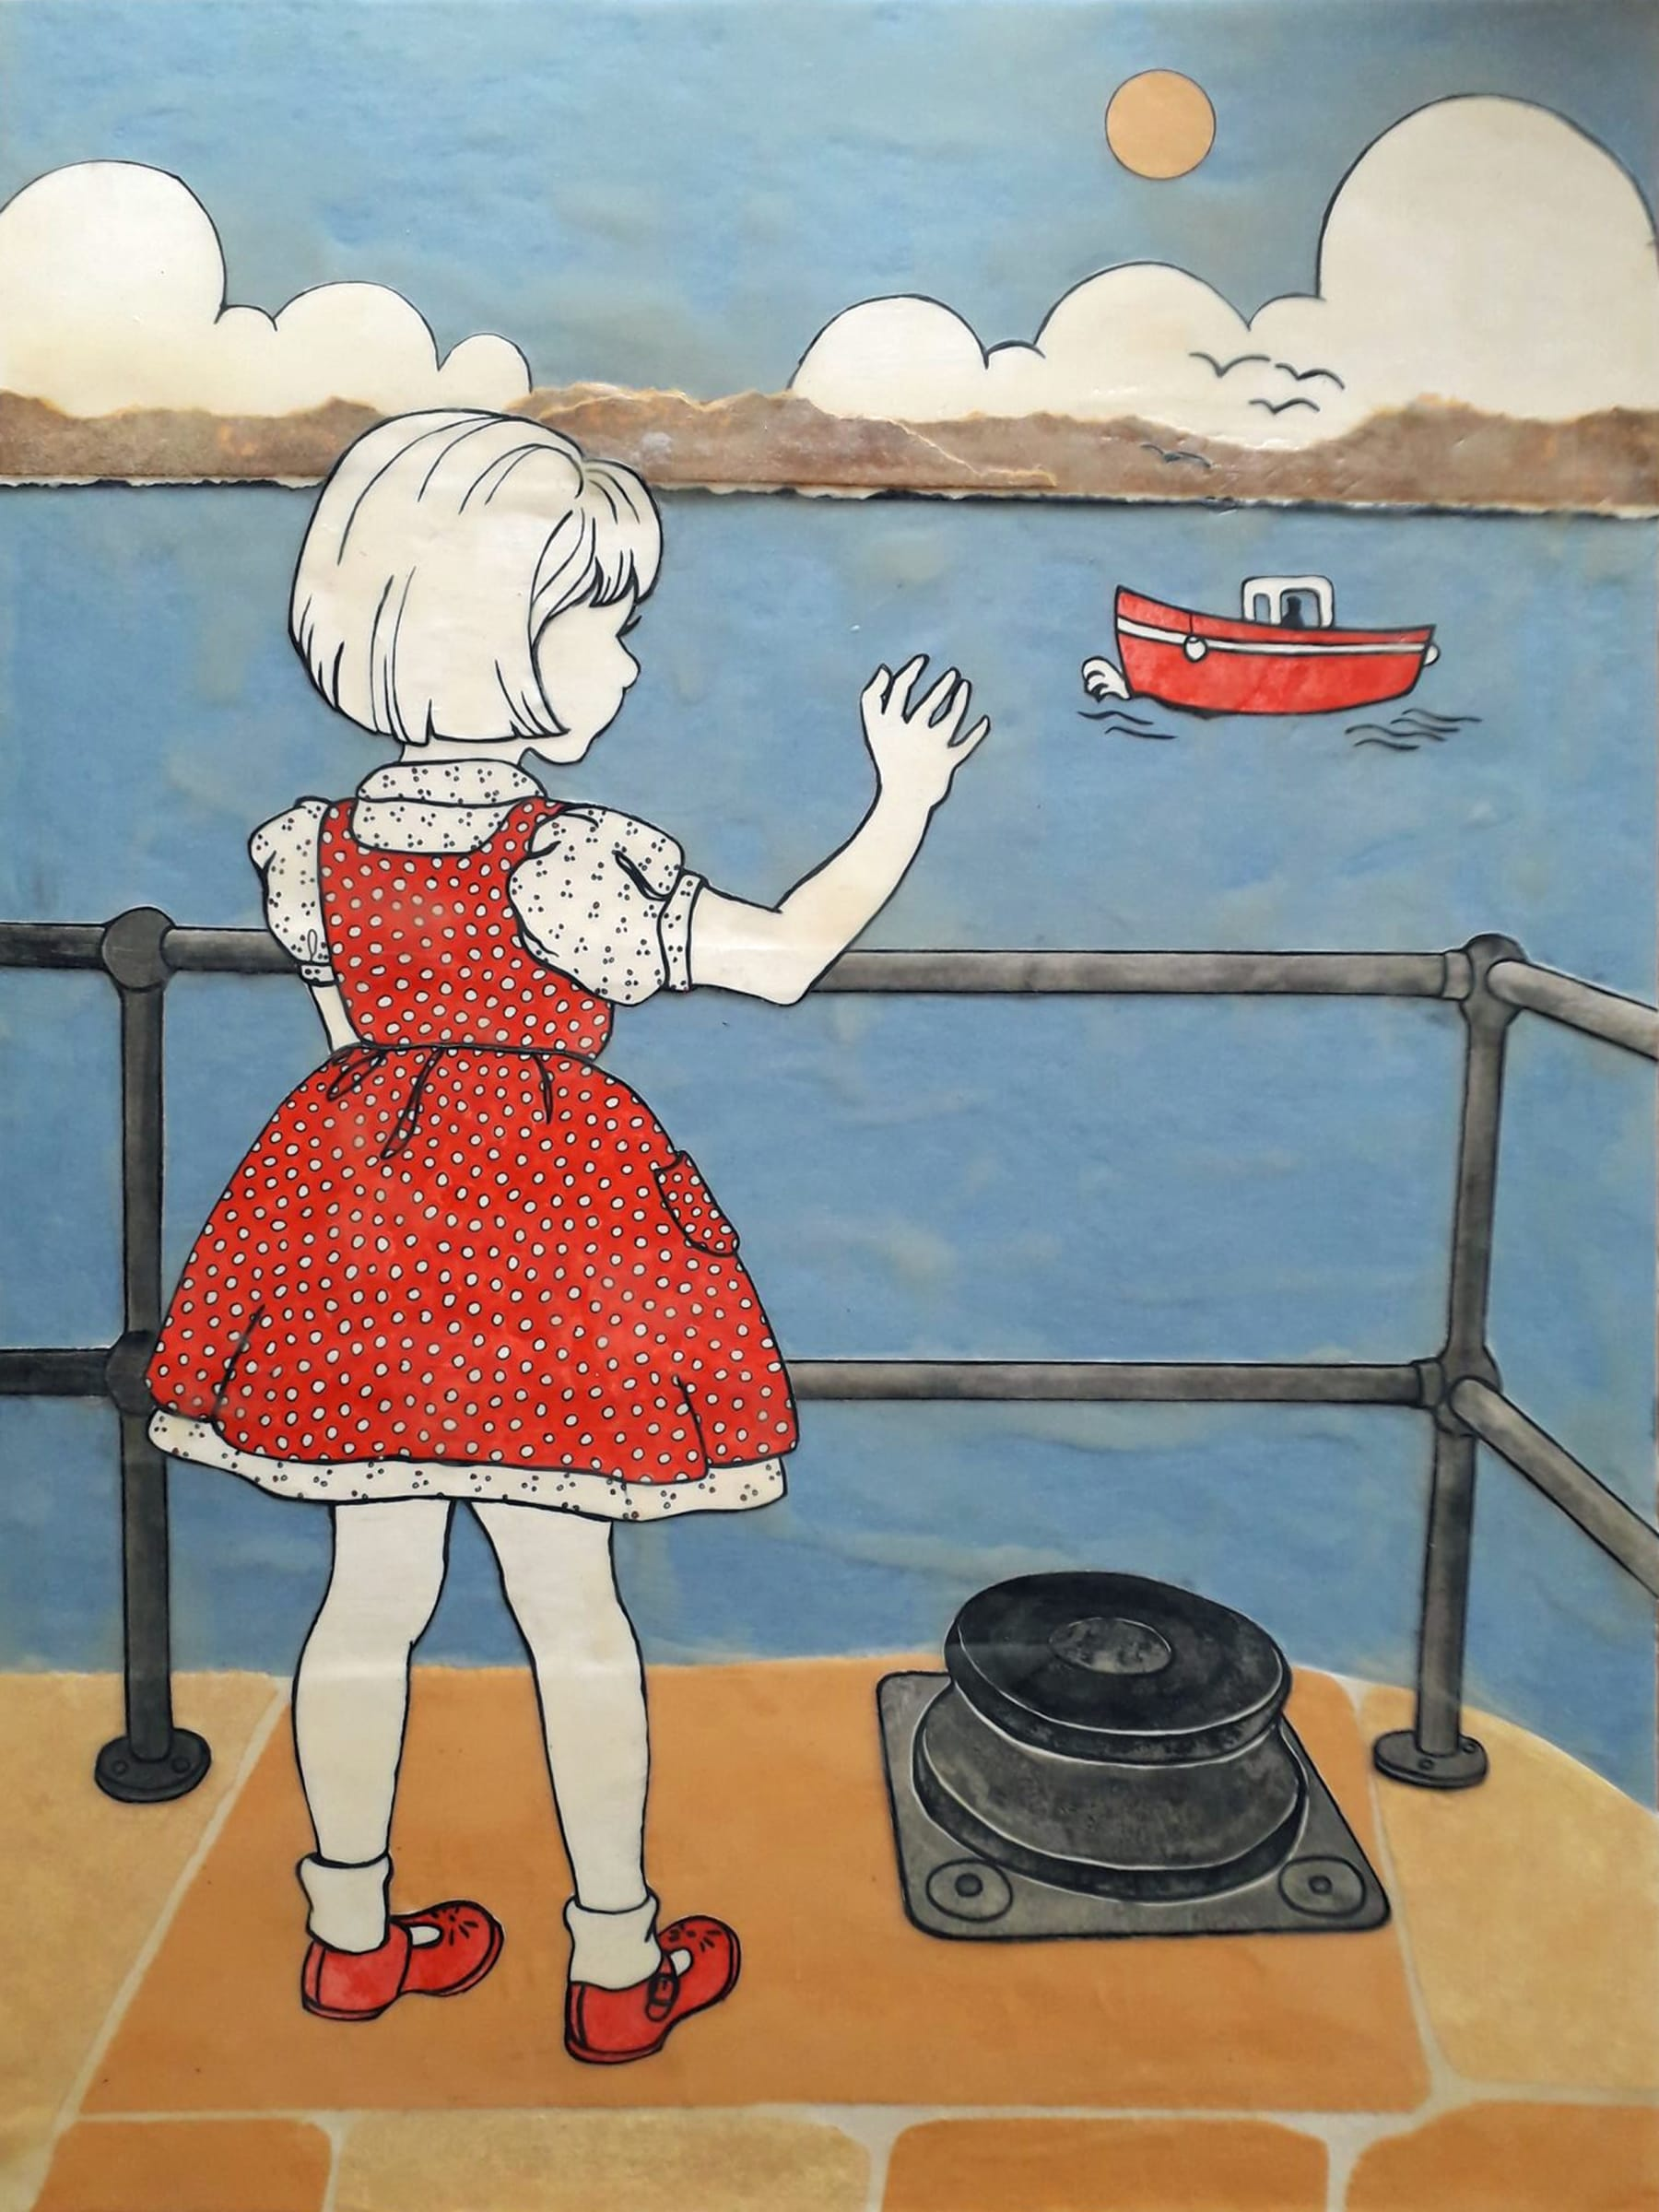 """<span class=""""link fancybox-details-link""""><a href=""""/artists/37-ann-winder-boyle/works/5881-ann-winder-boyle-the-girl-at-the-end-of-the-pier-2018/"""">View Detail Page</a></span><div class=""""artist""""><strong>Ann Winder-Boyle</strong></div> b. 1963 <div class=""""title""""><em>The Girl at the End of the Pier</em>, 2018</div> <div class=""""signed_and_dated"""">signed by the artist on reverse</div> <div class=""""medium"""">vintage books, ink drawings and beeswax</div> <div class=""""dimensions"""">61 x 46 cm unframed </div><div class=""""price"""">£1,500.00</div>"""